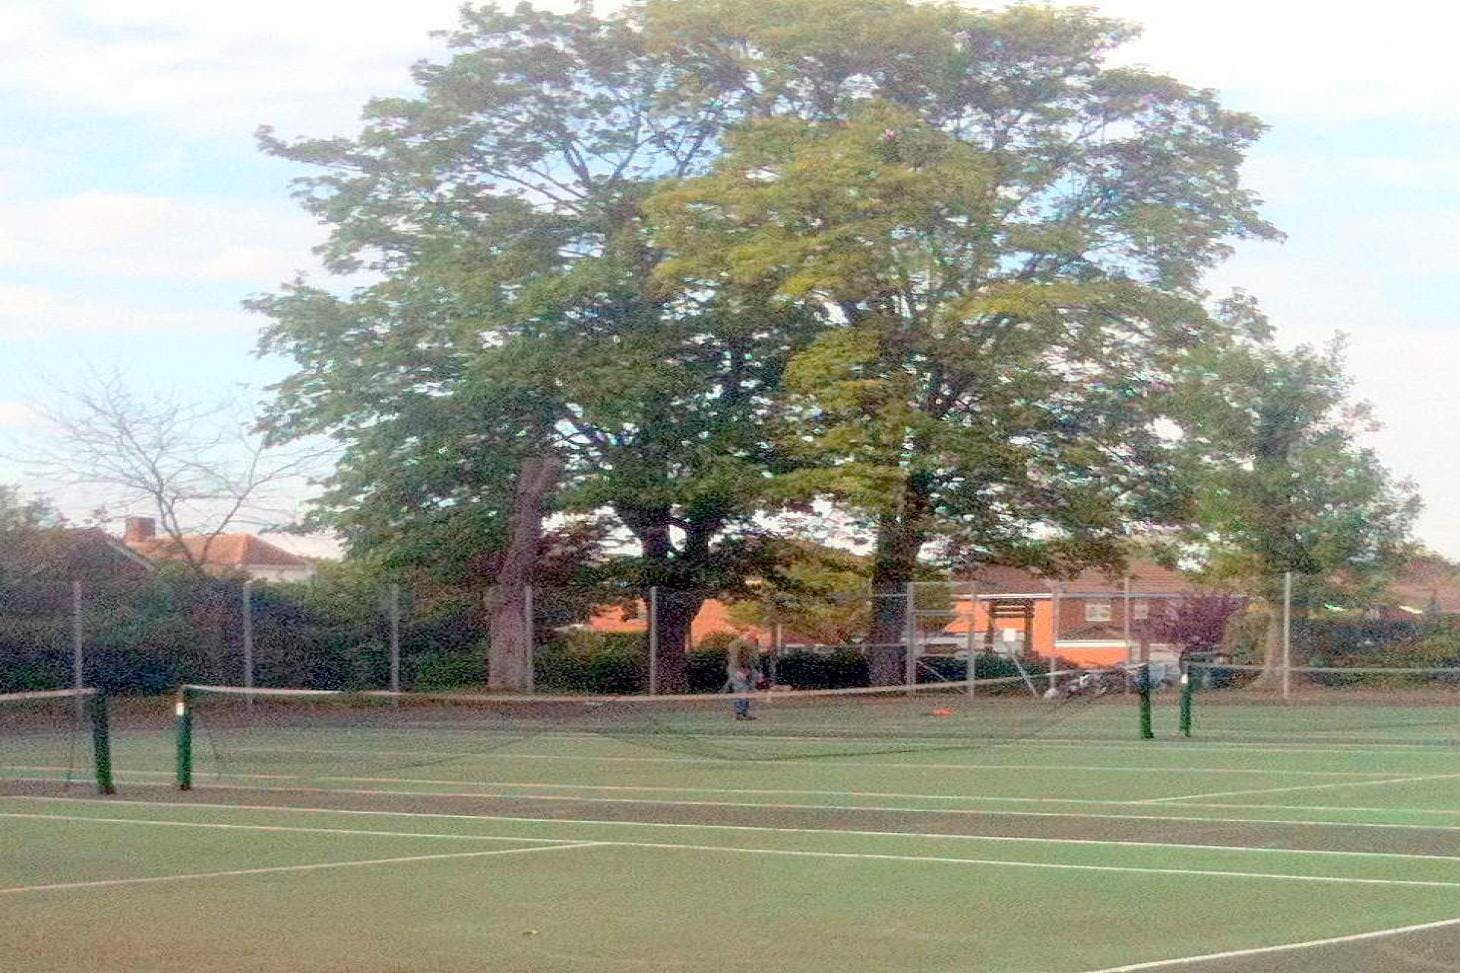 Alexandra Recreation Ground Outdoor | Hard (macadam) tennis court